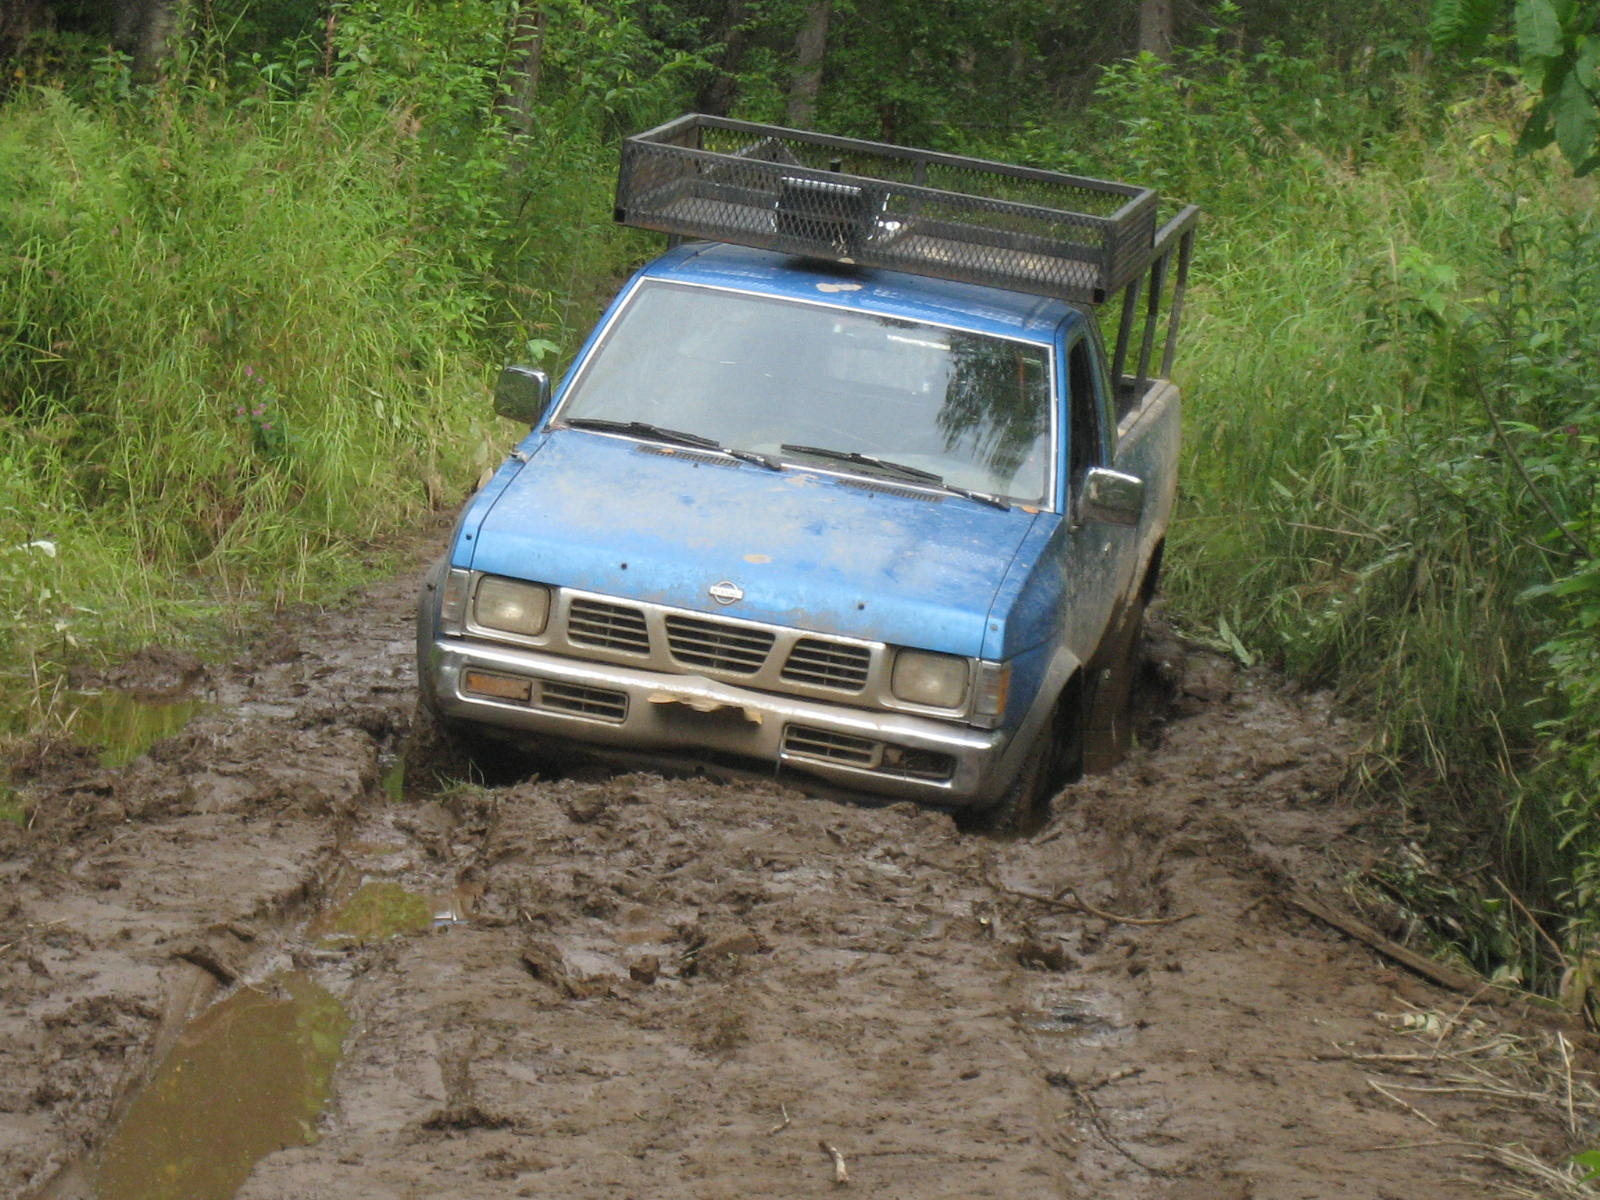 Getting stuck in the mud!